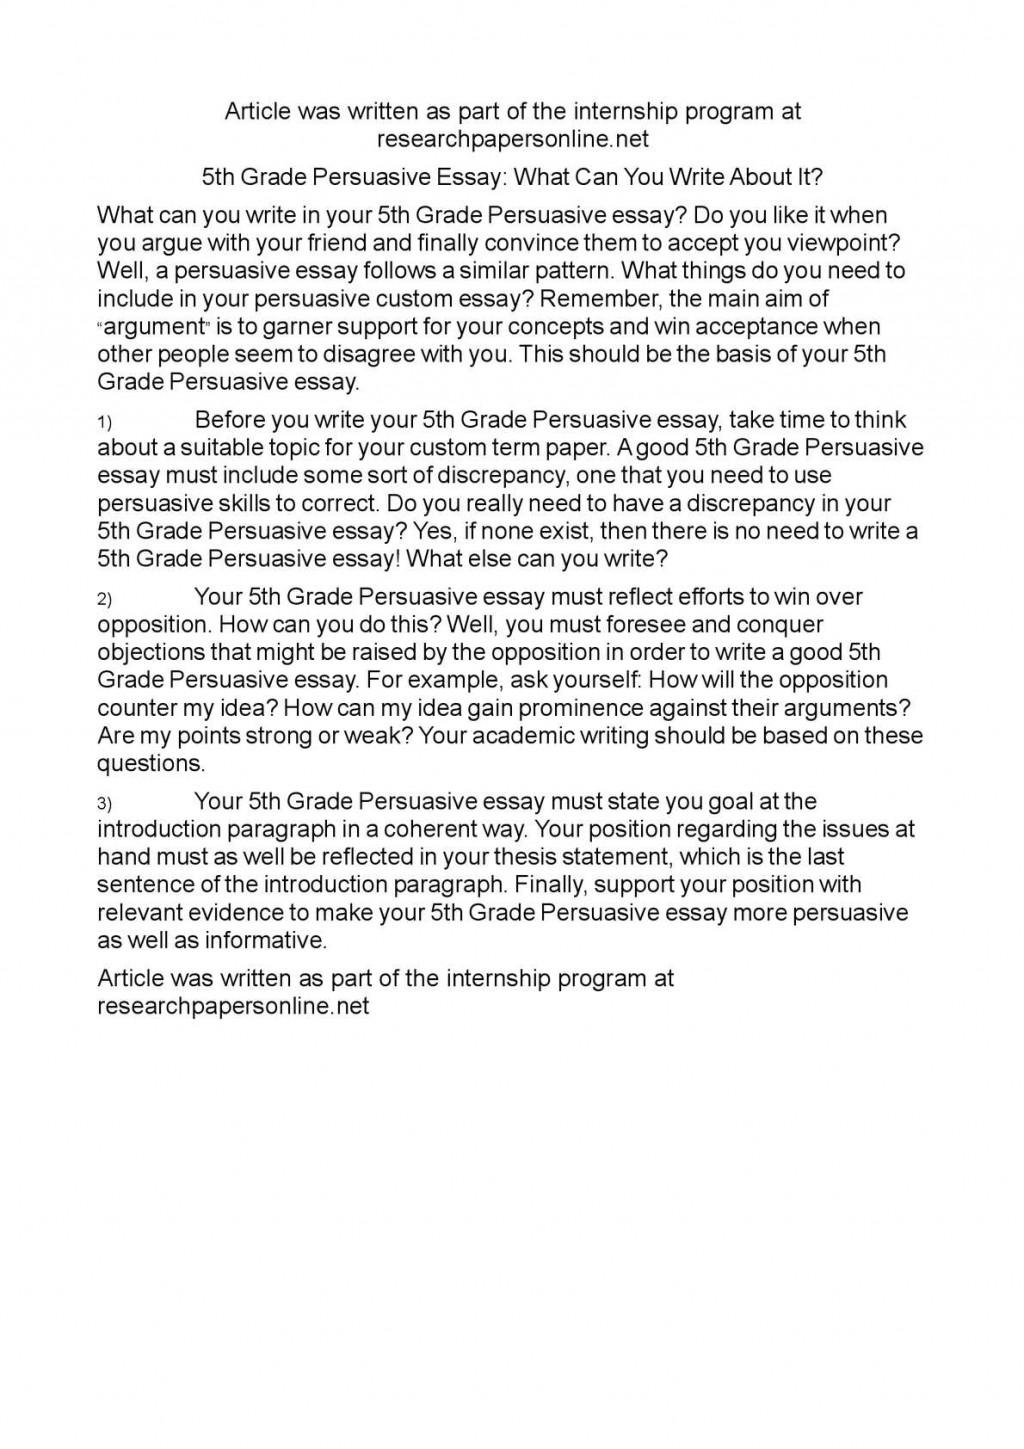 005 Persuasive Essay Writing For 5th Grade Example Impressive Essays Written By Fifth Graders Sample A Large